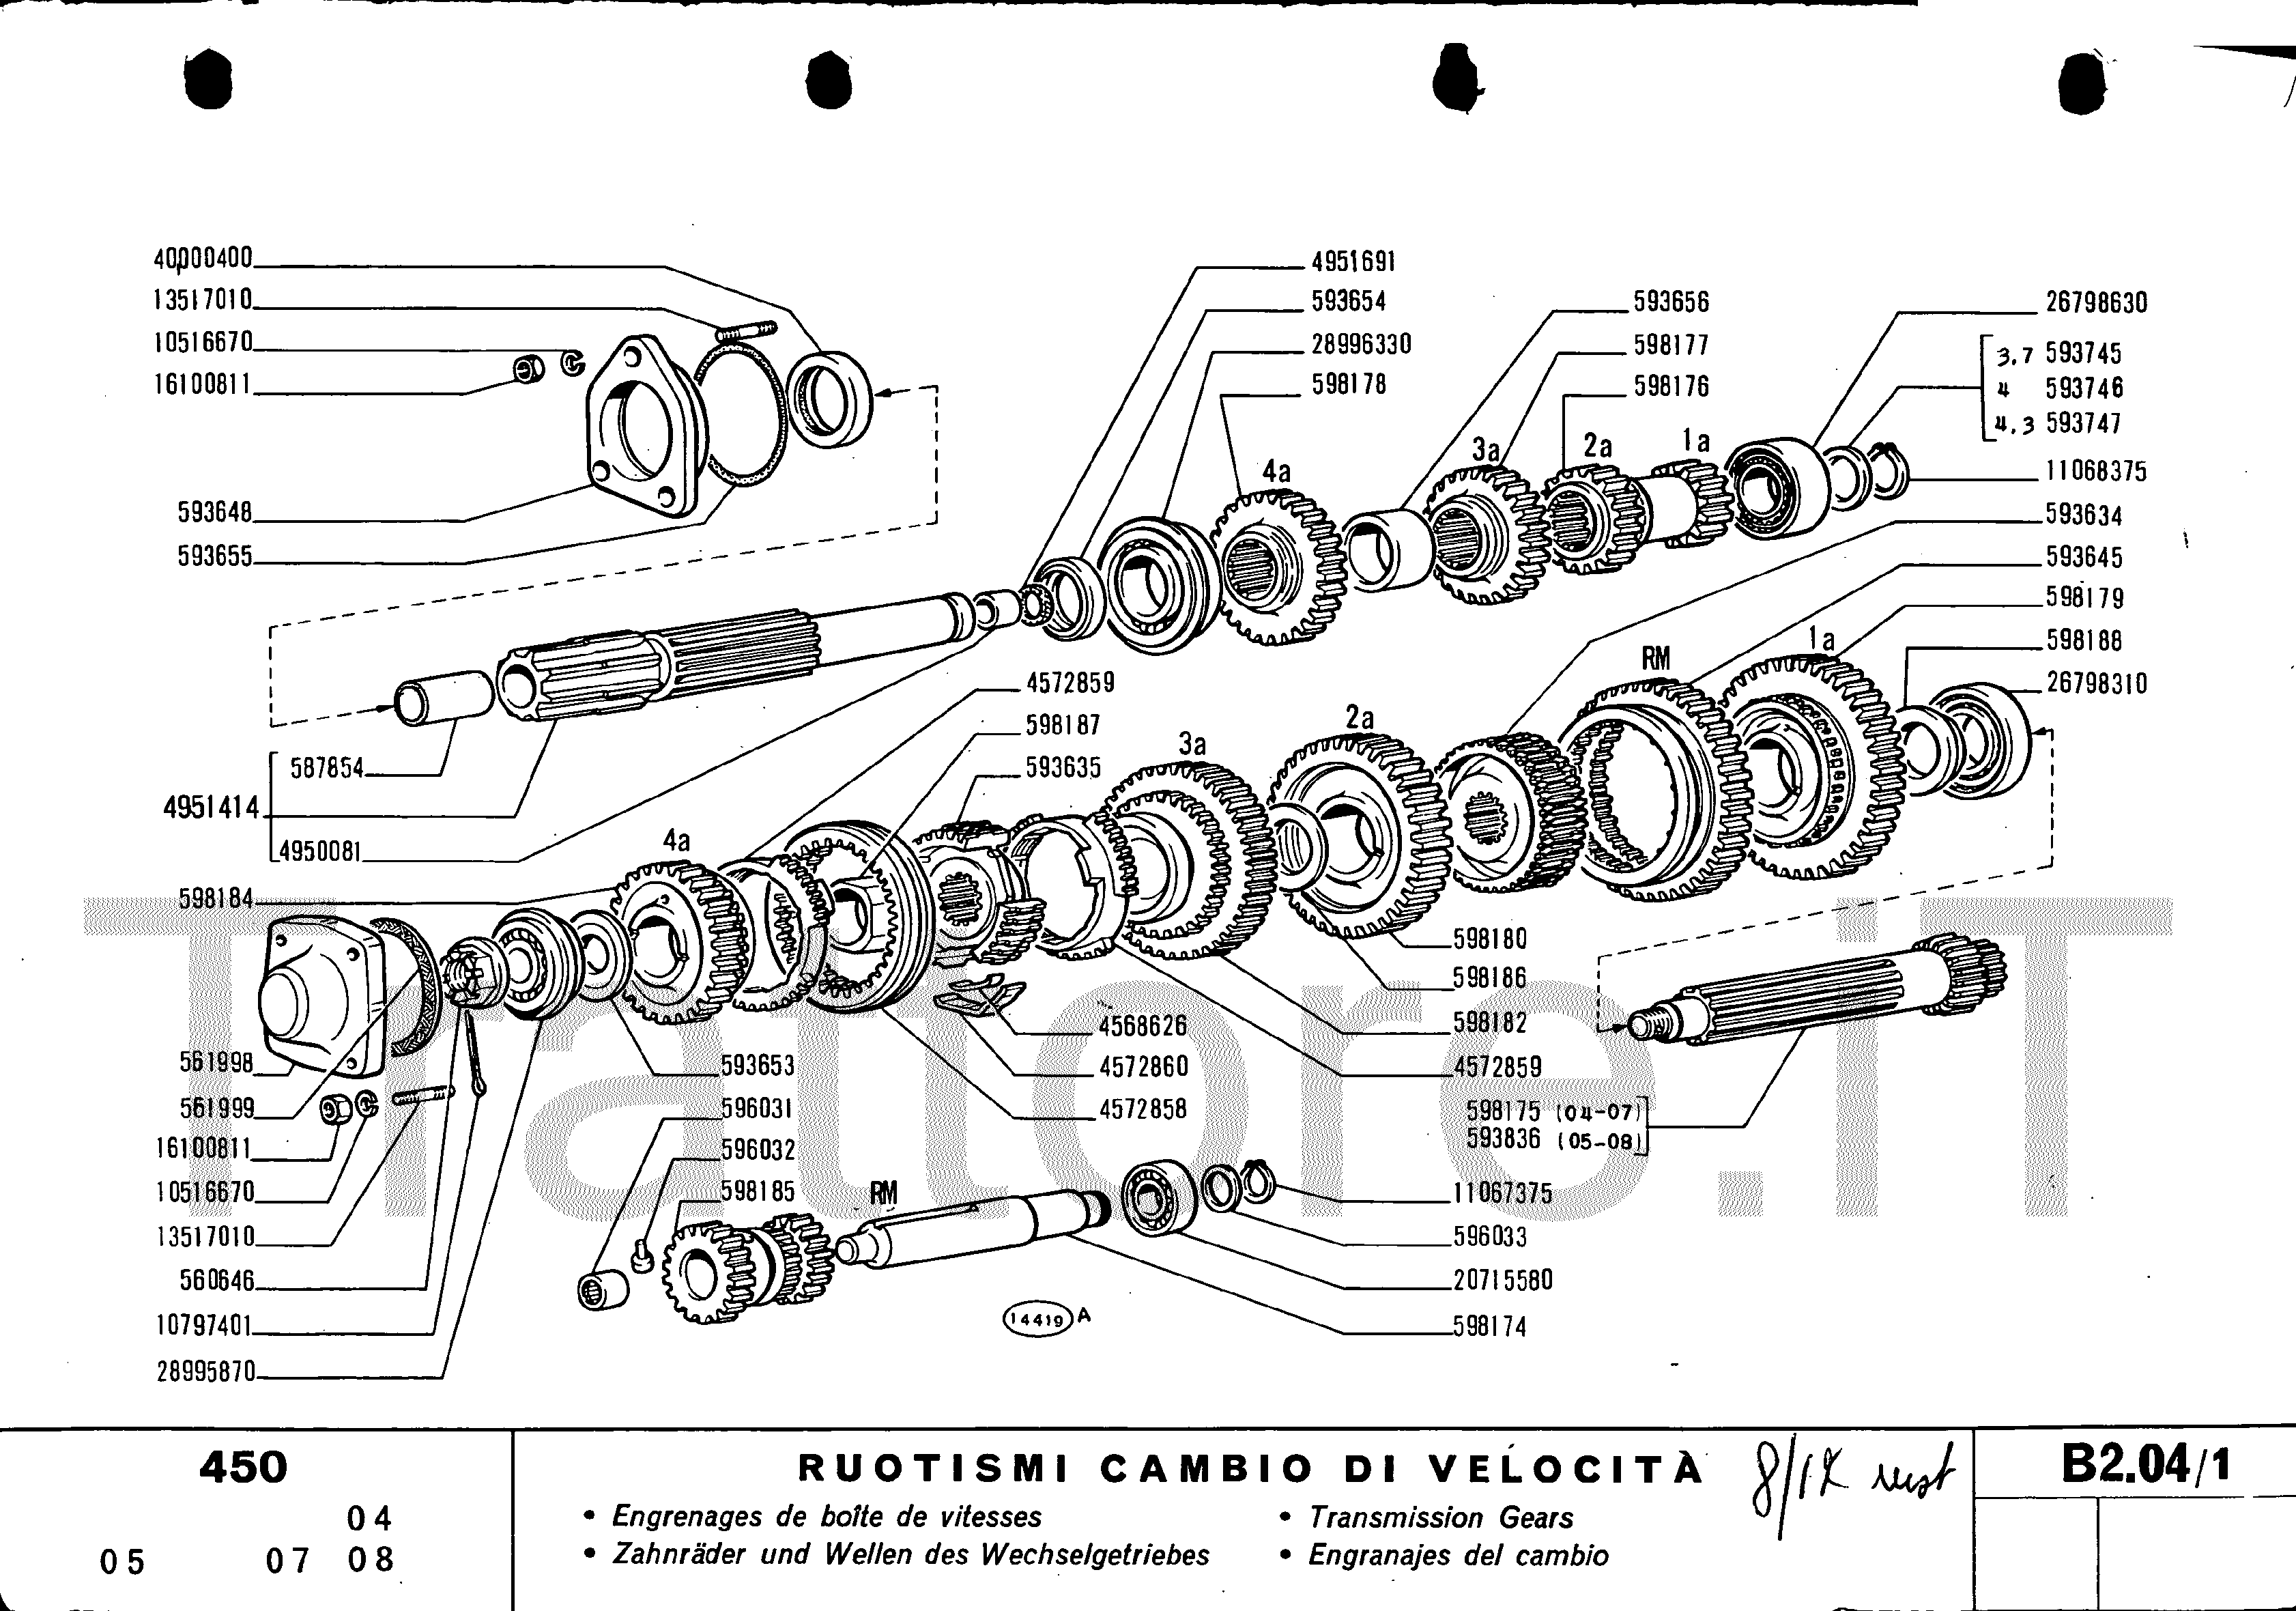 2012 fiat 500 wiring diagram  fiat  auto fuse box diagram